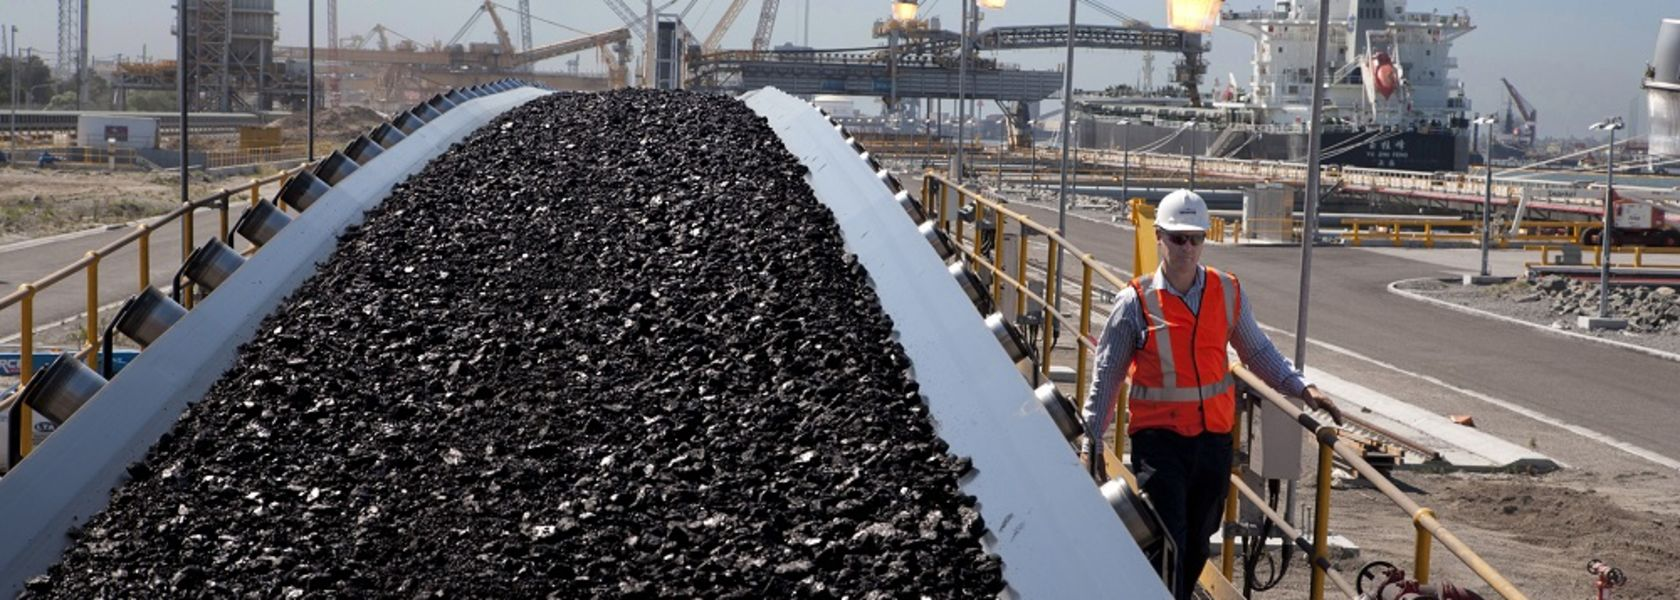 US coal exports fall 20% in 2019